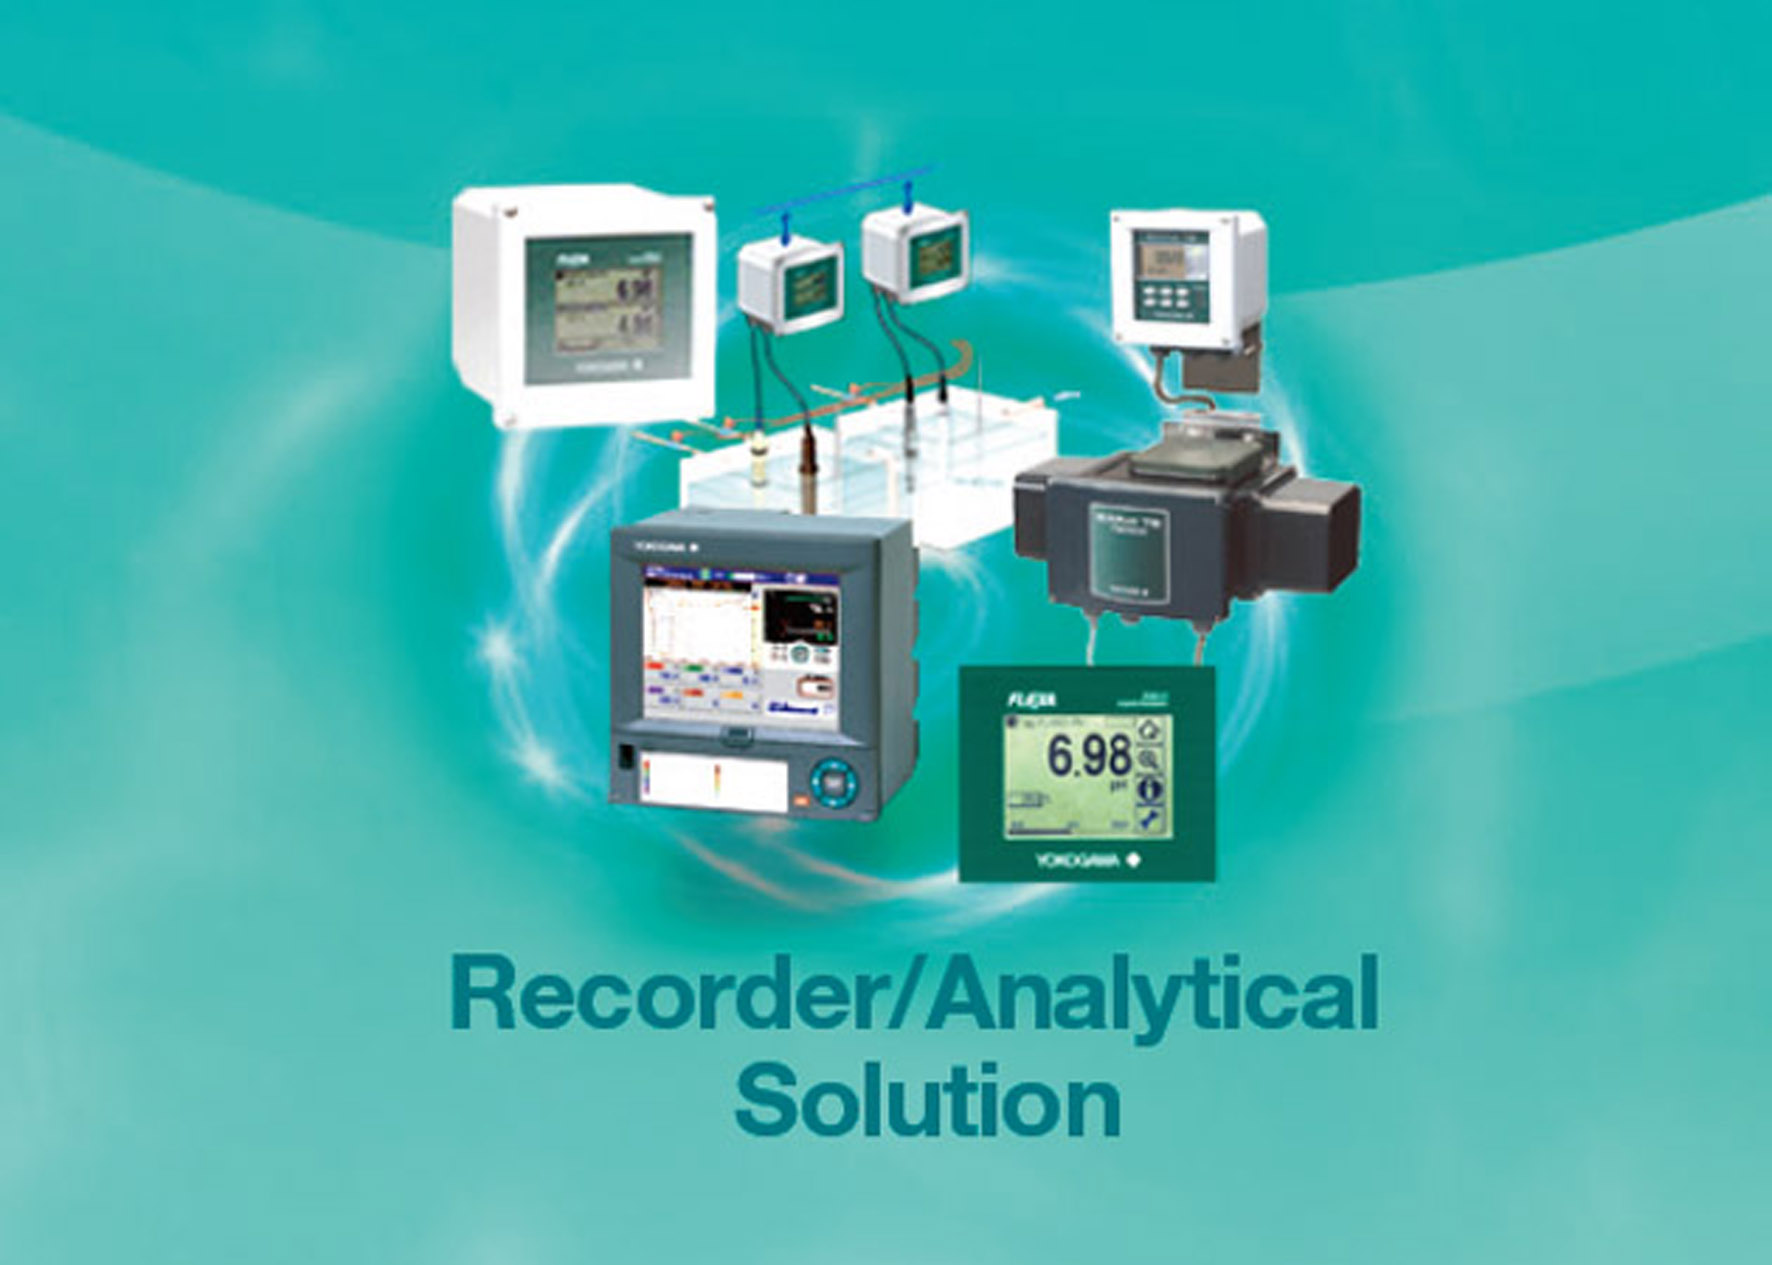 Recorder/Analytical Solution